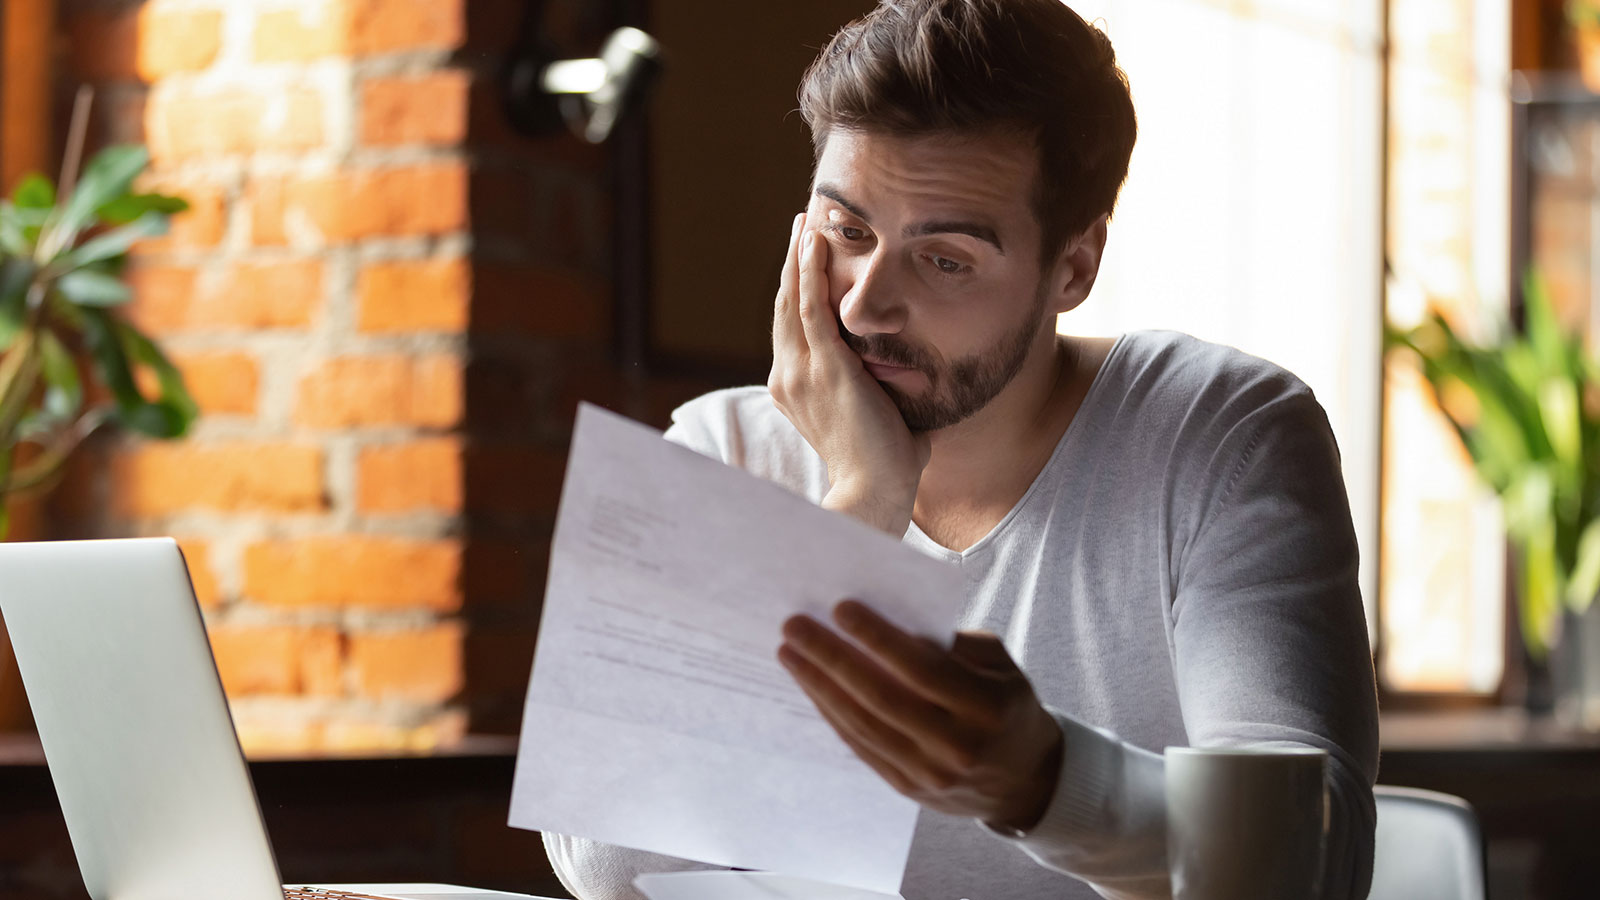 Man worrying over Character and Fitness Application